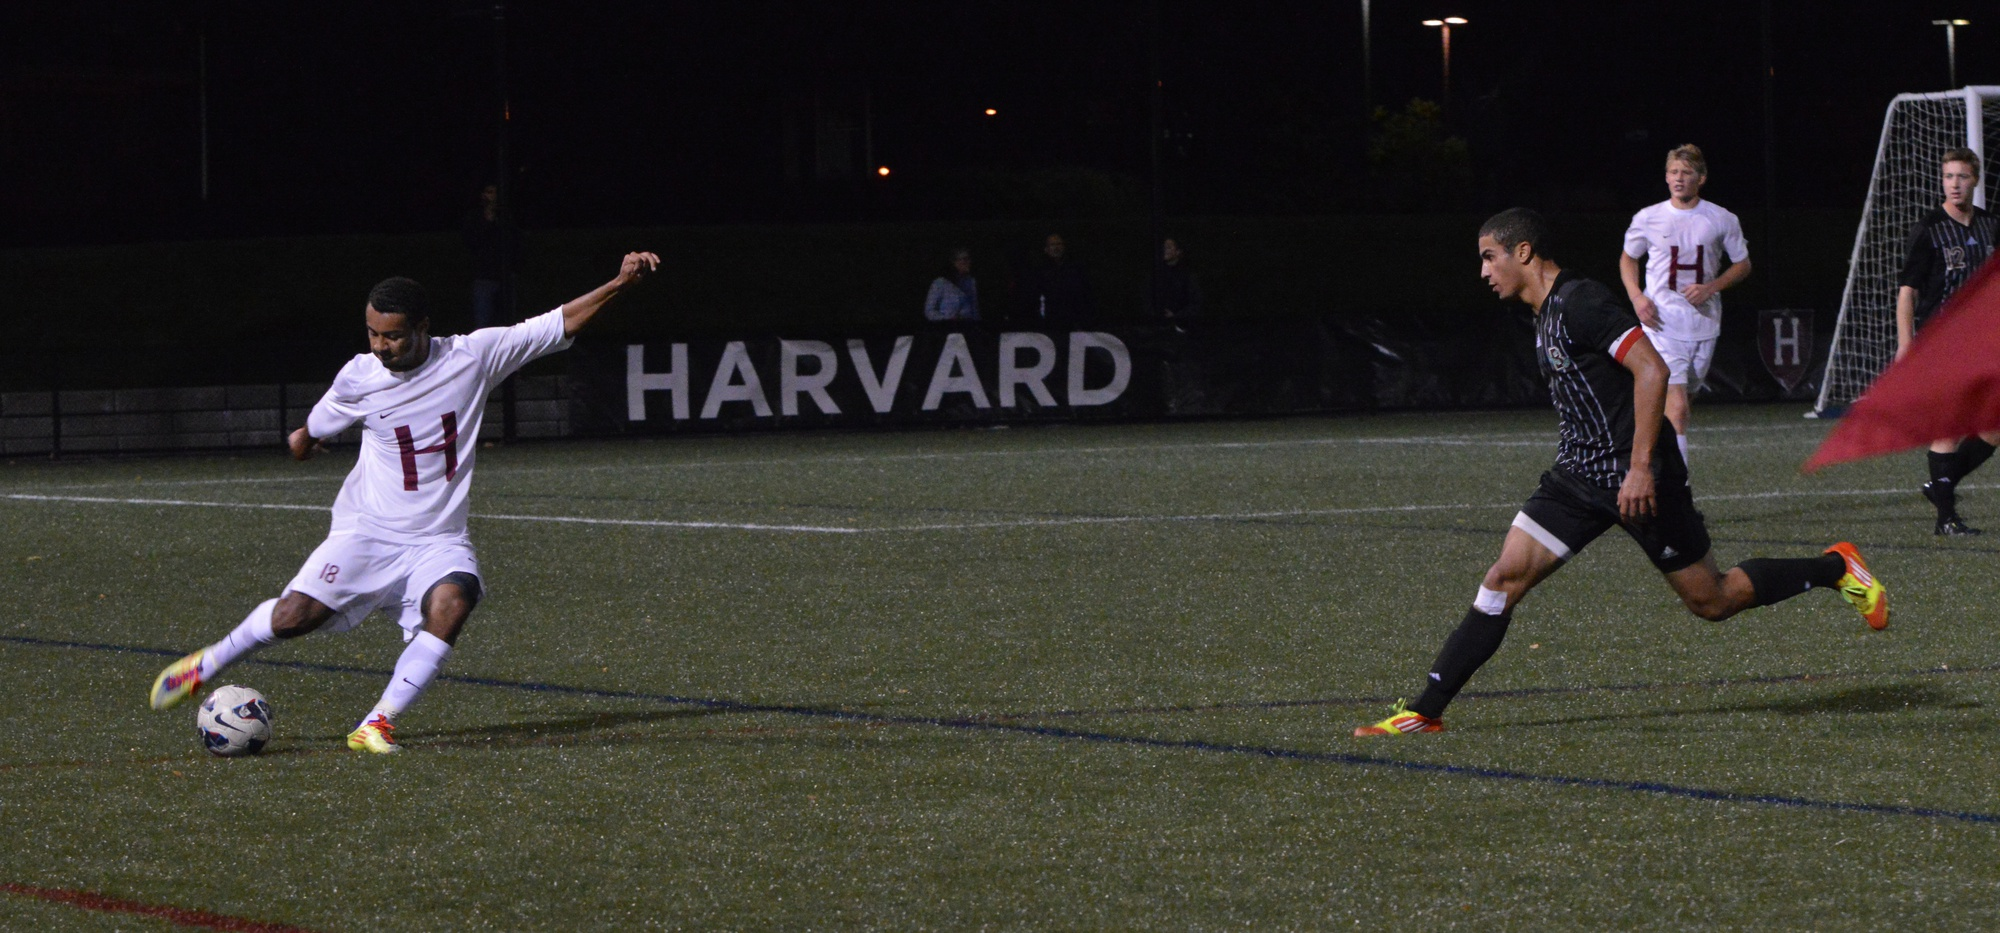 Andrew Wheeler-Omiunu, shown here in previous action, scored a goal against Manhattan and notched an assist against Hartford. The Harvard men's soccer team won both games at home this weekend.